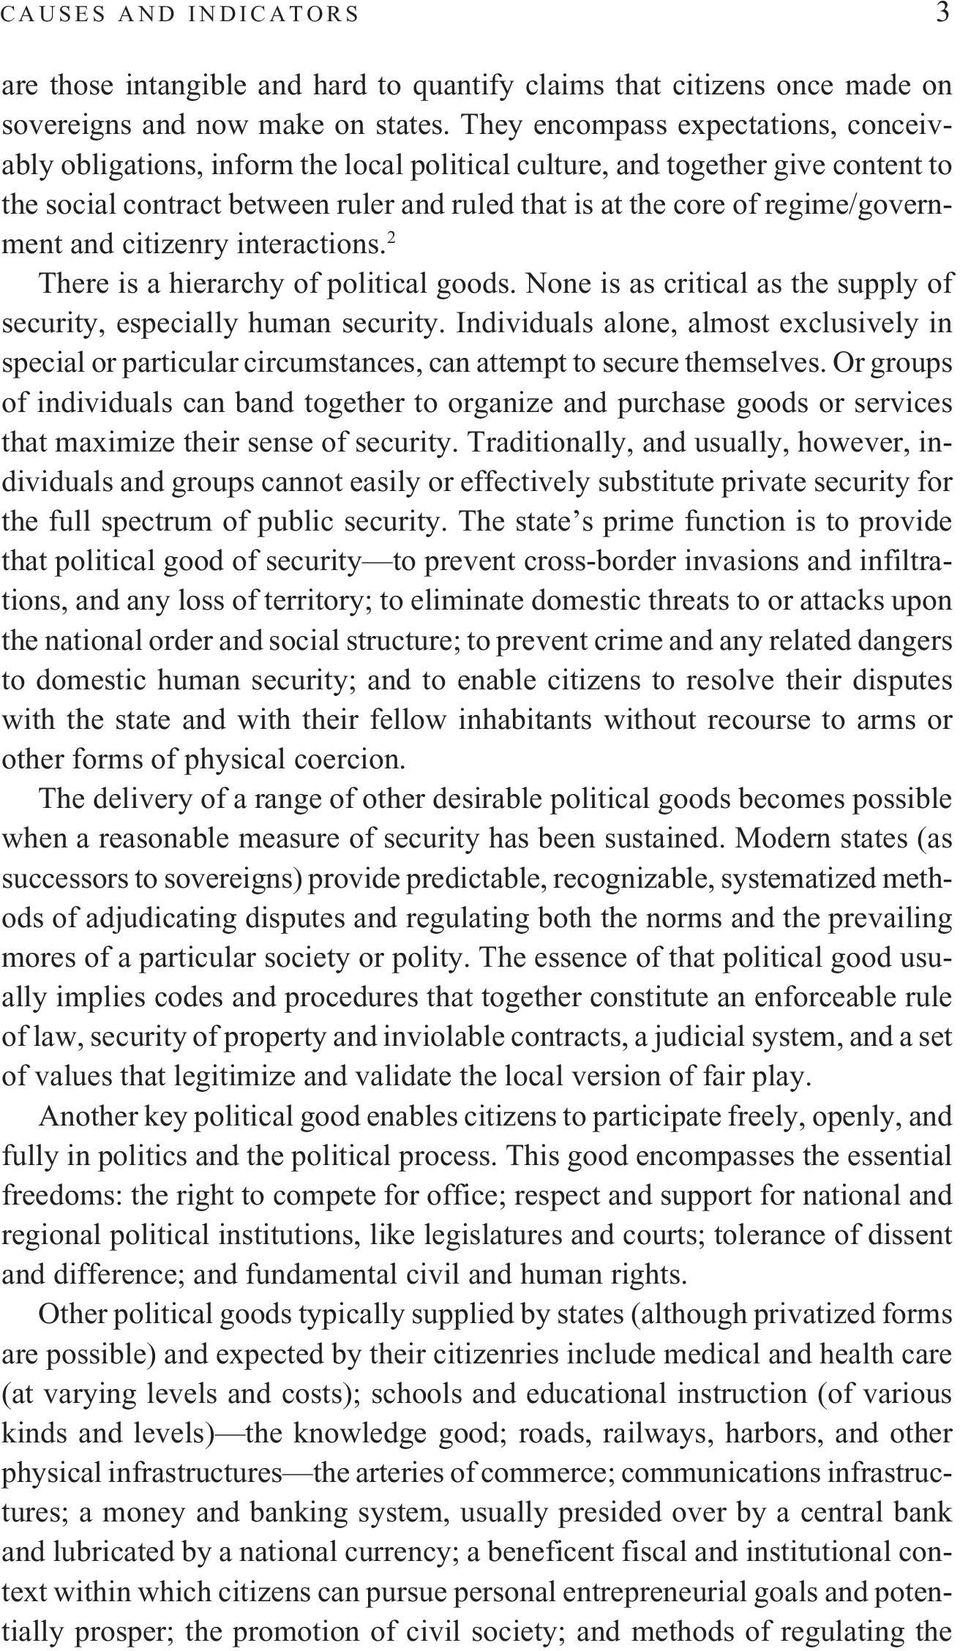 regime/government and citizenry interactions. 2 There is a hierarchy of political goods. None is as critical as the supply of security, especially human security.